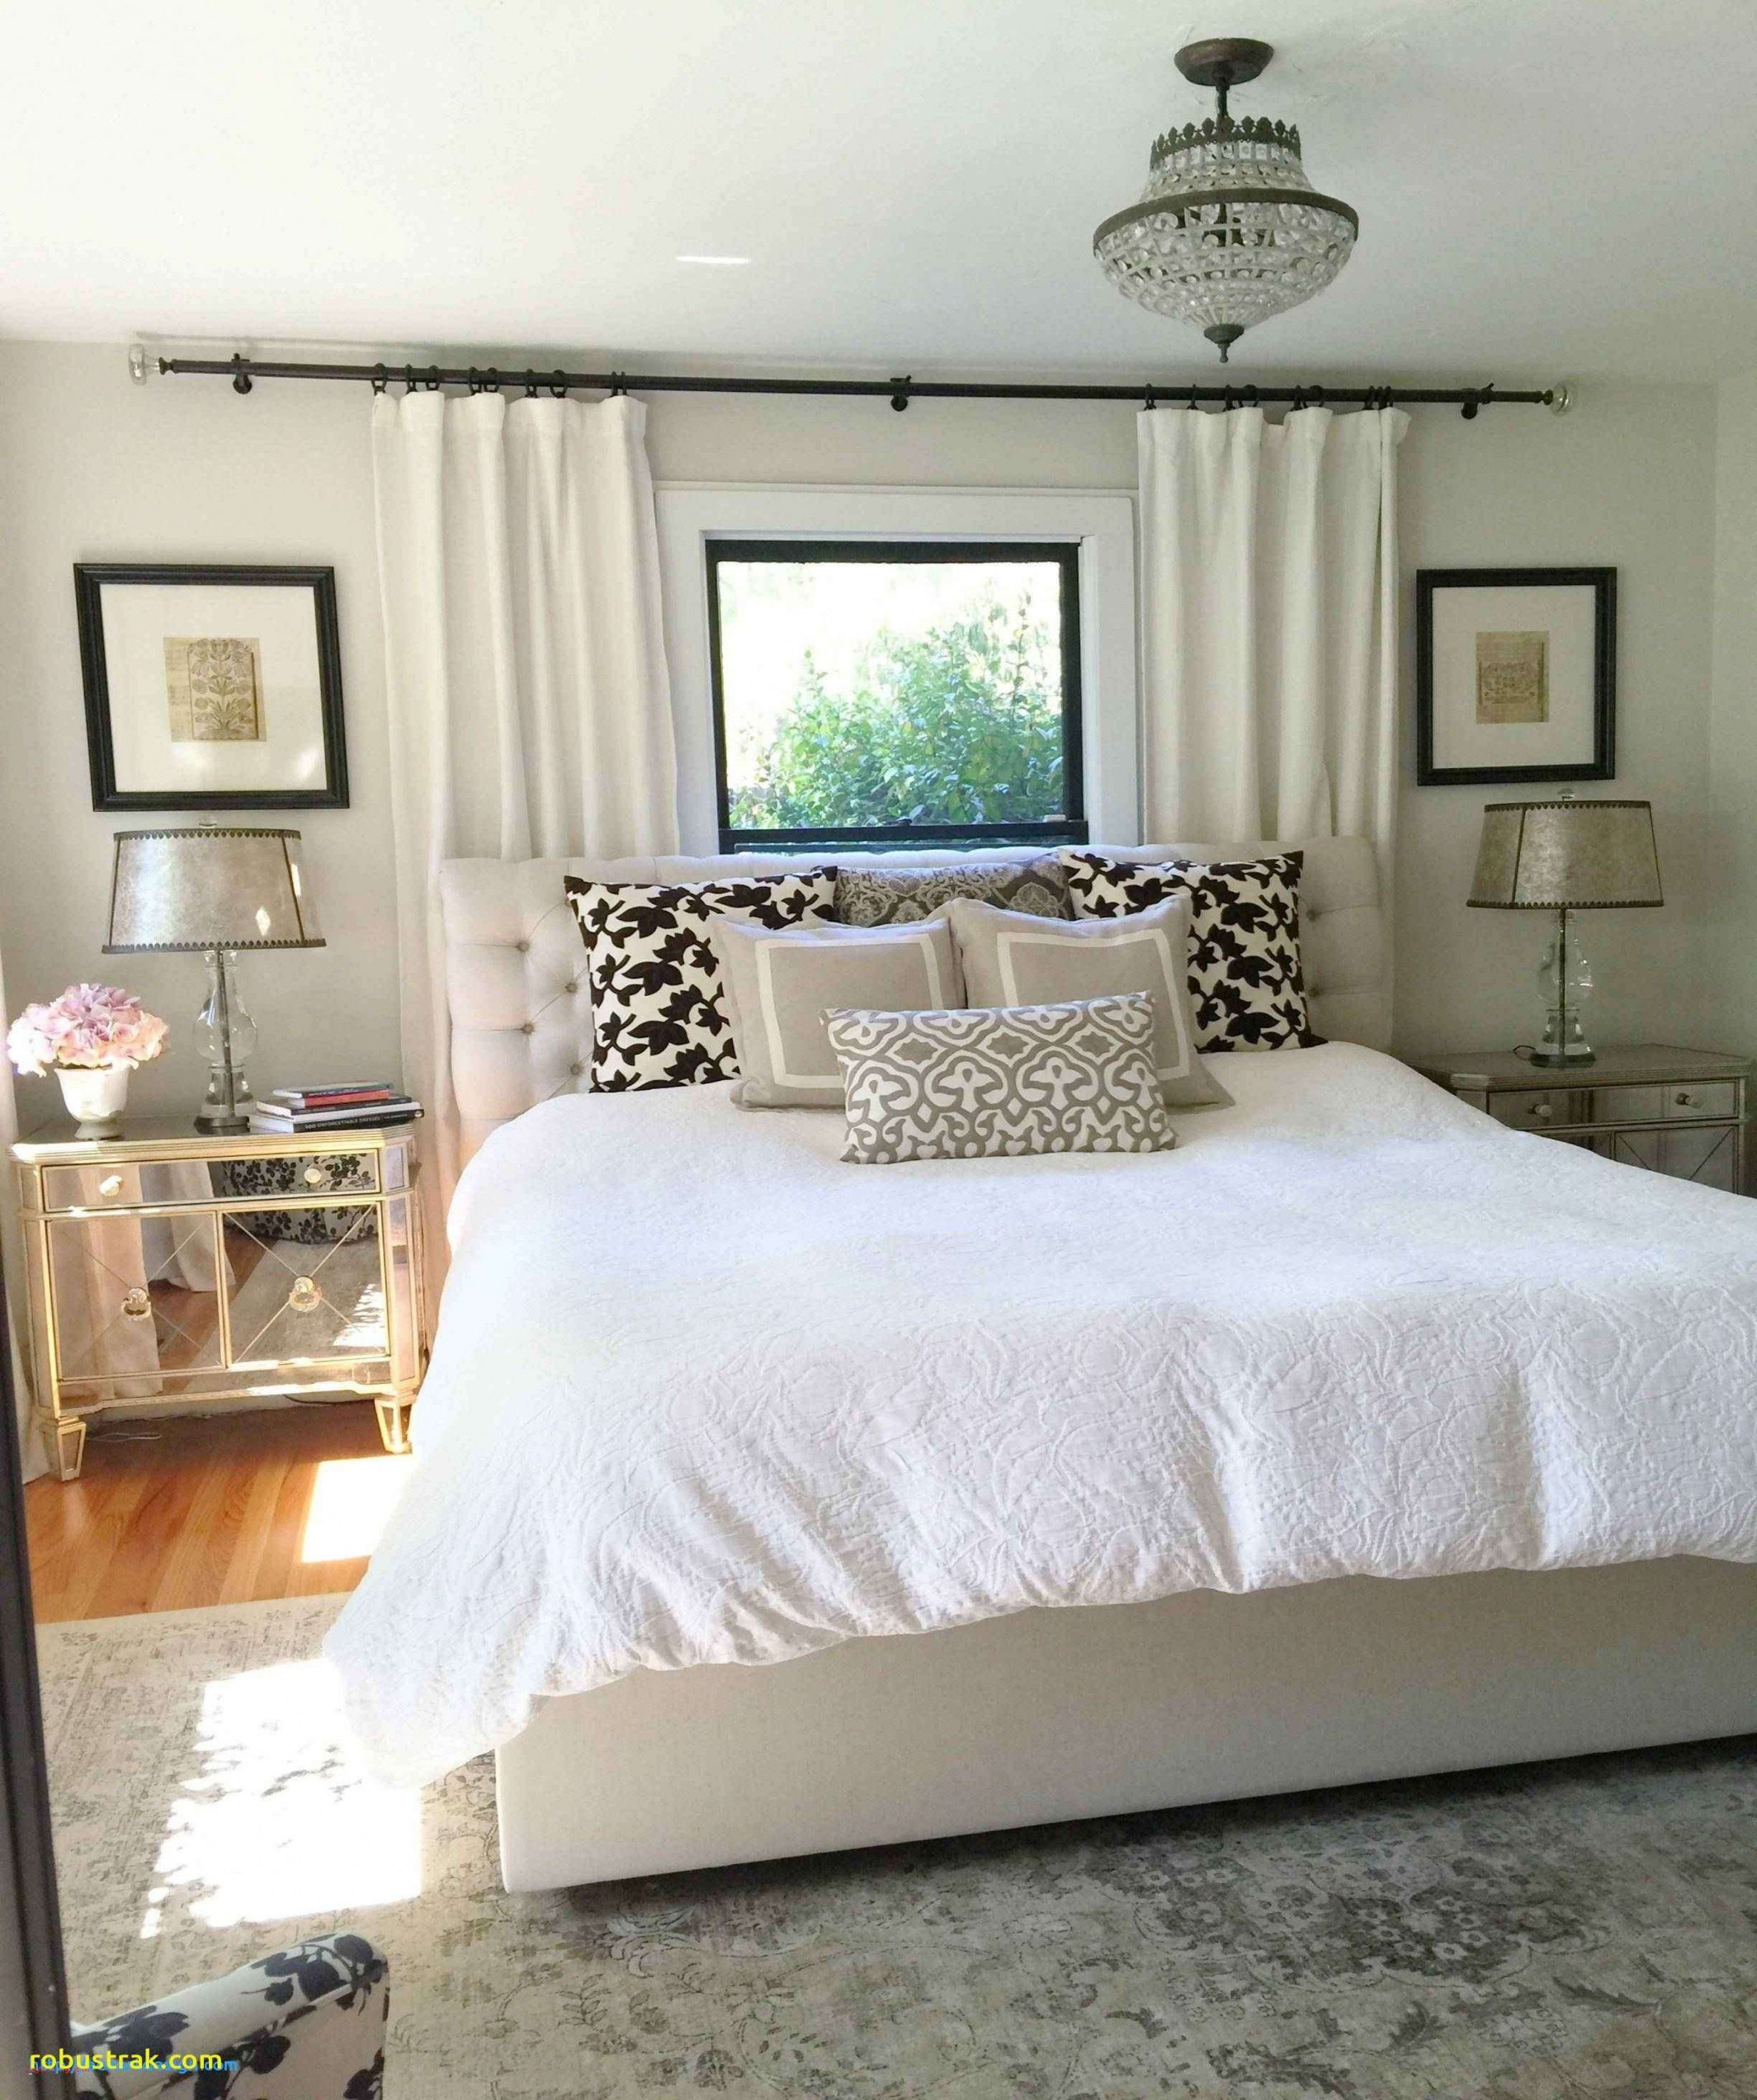 Ikea White Bedroom Furniture Awesome Small Bedroom Inspo White Ikea Bedroom Furniture Hemnes Bed